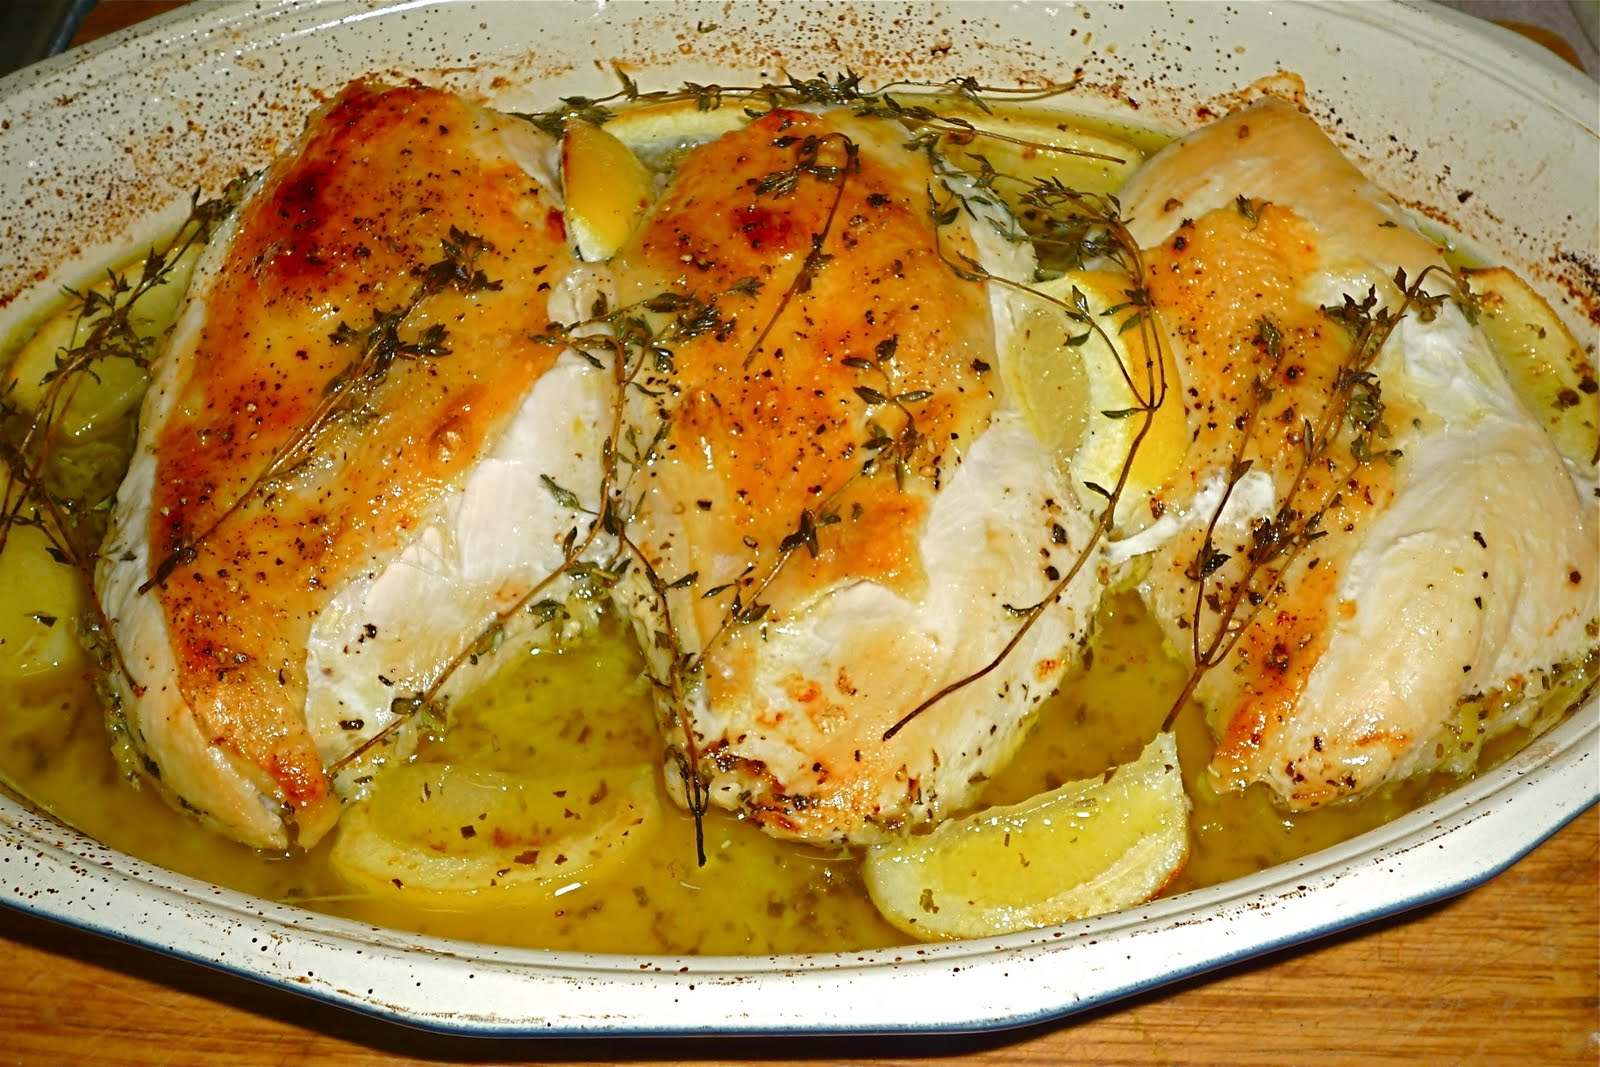 ... : My New Favorite Chicken Recipe: Lemon-Thyme Roasted Chicken Breasts